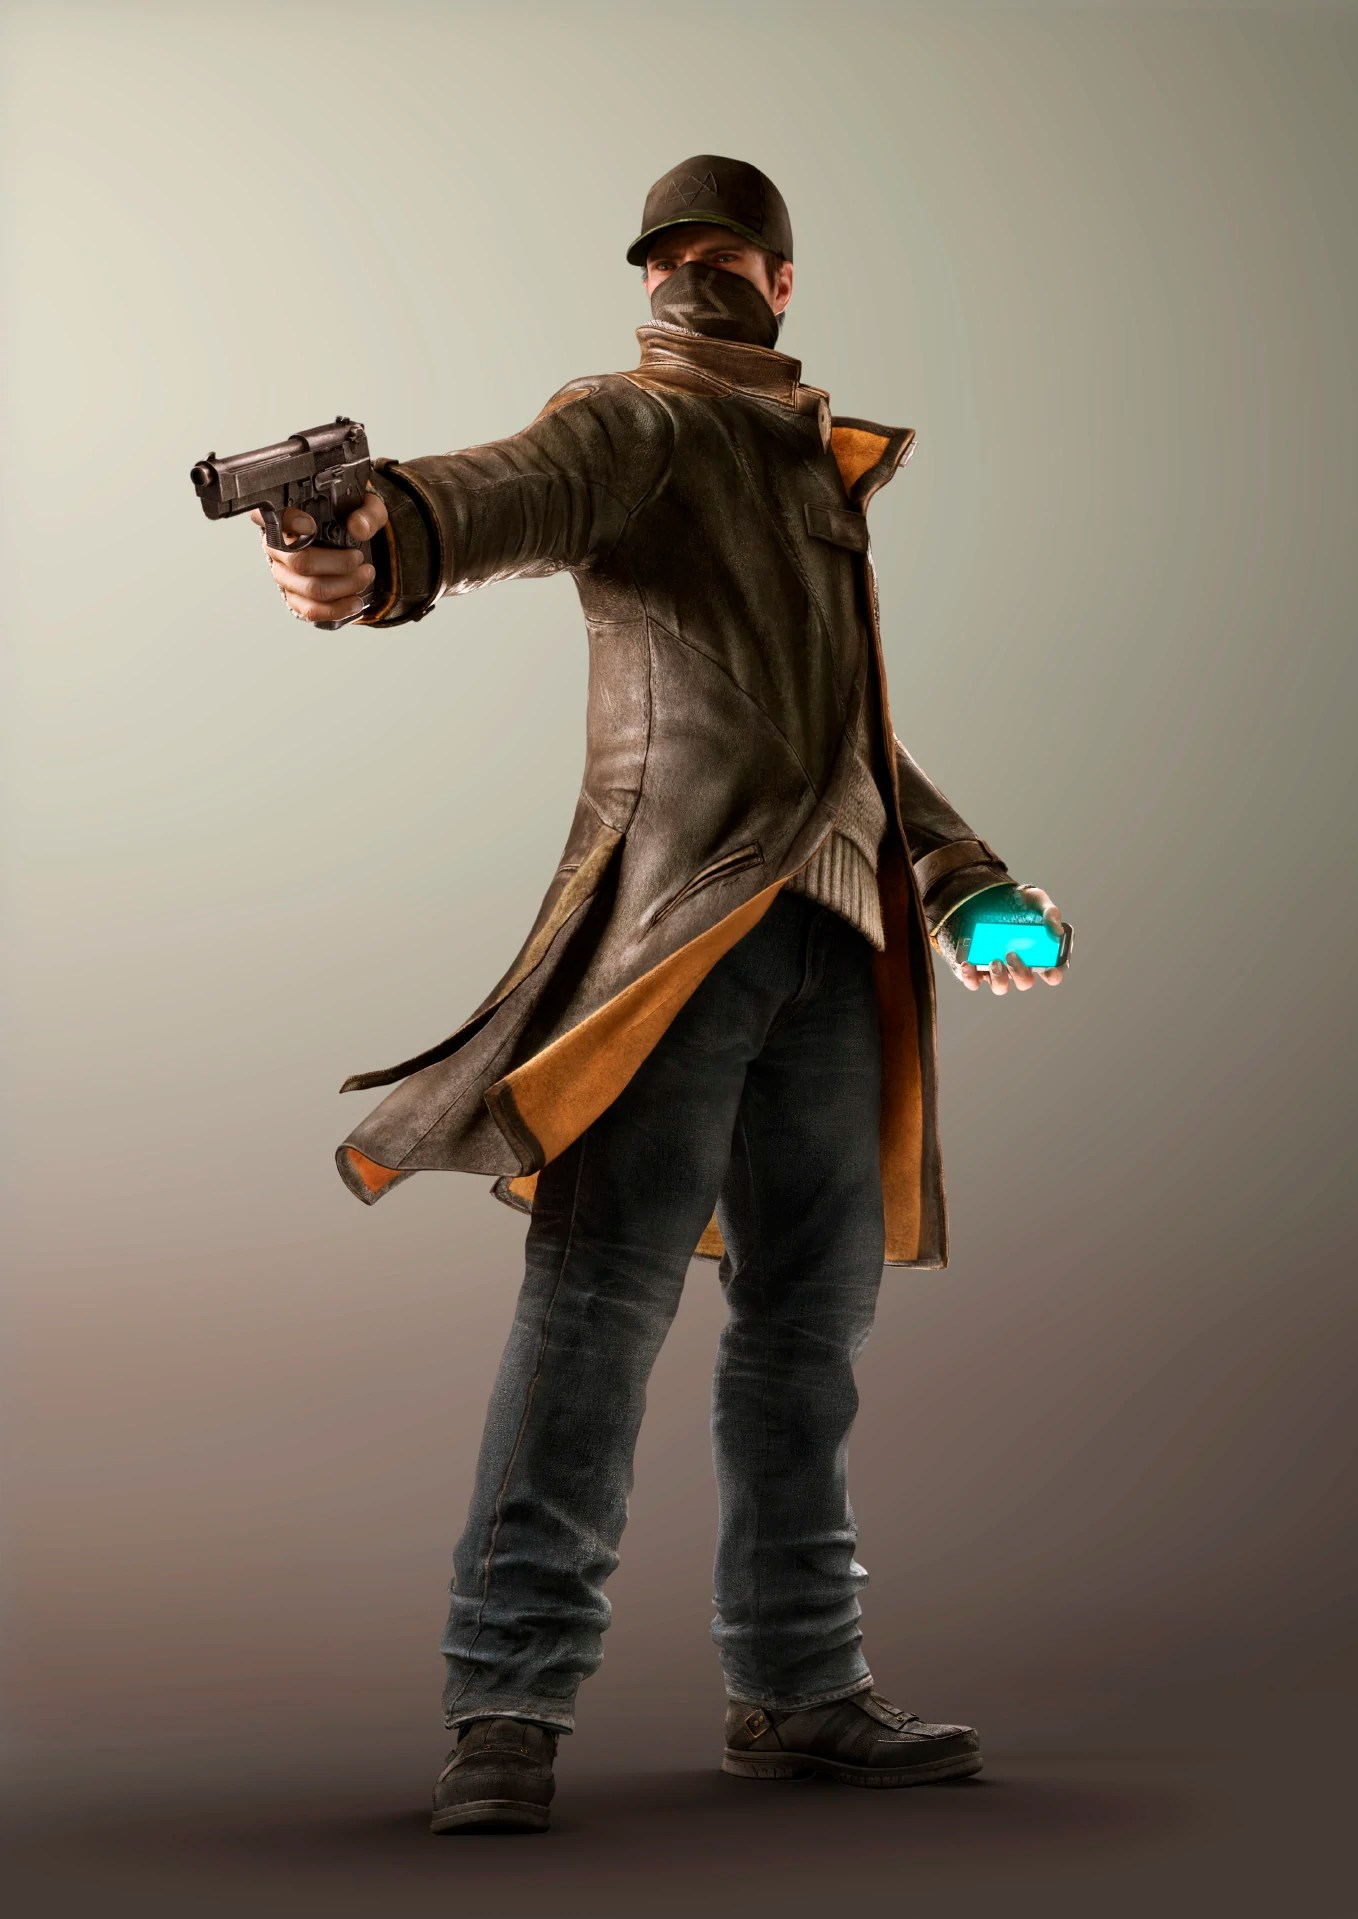 https://i1.wp.com/img3.wikia.nocookie.net/__cb20140509161955/watchdogscombined/images/e/ed/Watch_Dogs_Aiden_Pearce_Profile.jpg